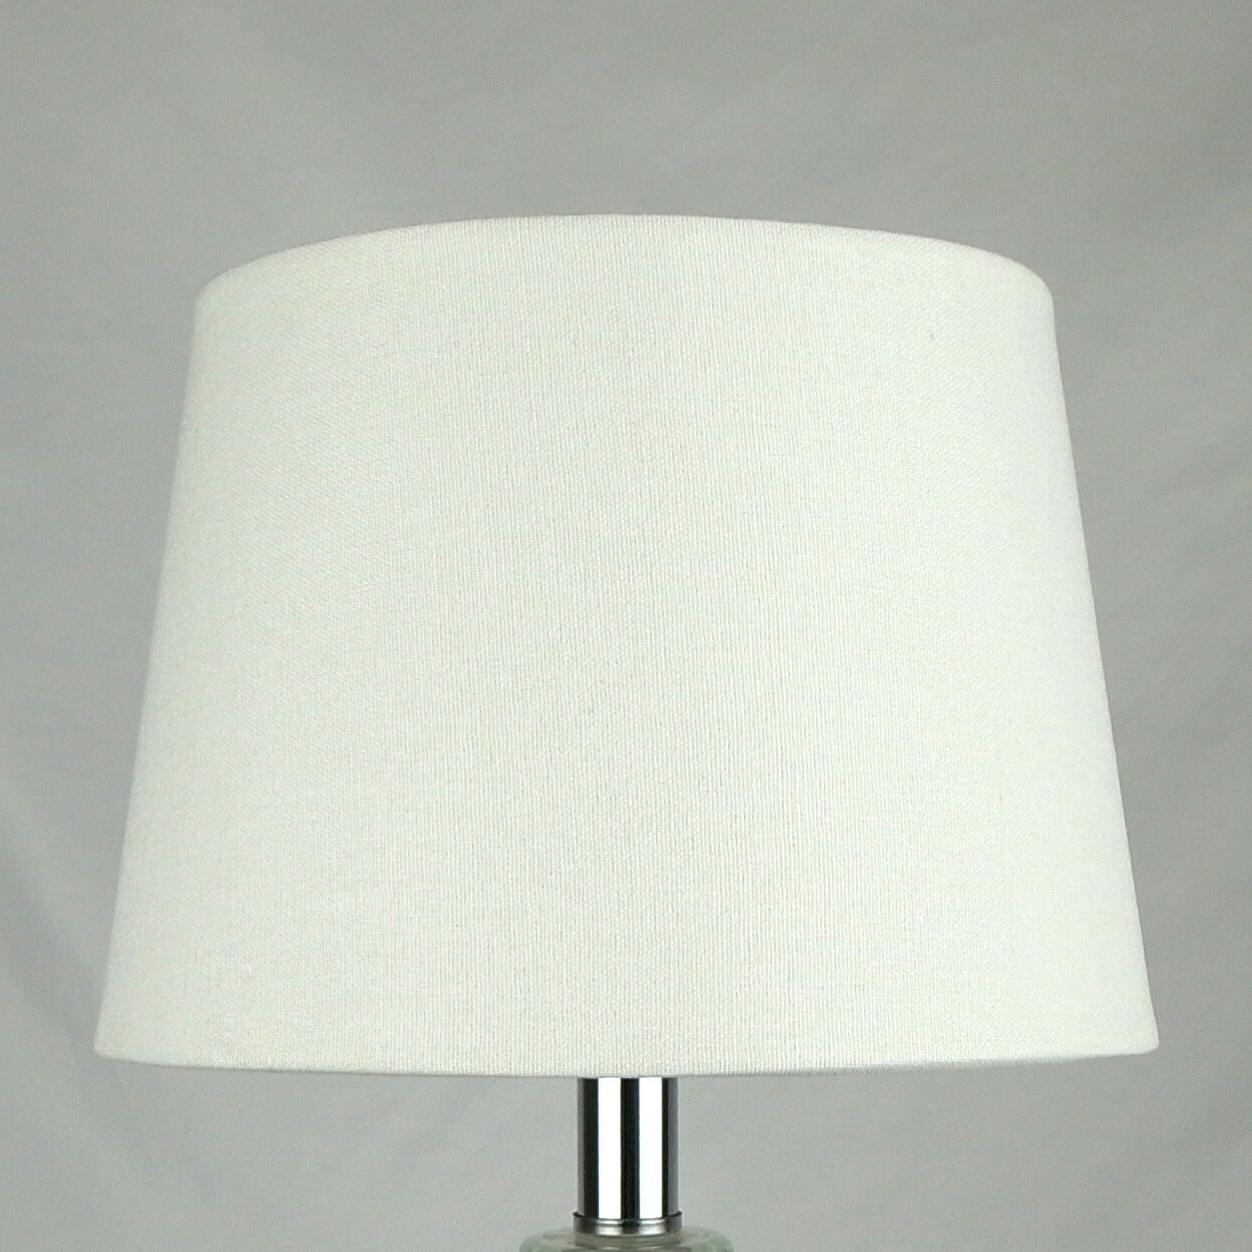 "Uno Fitter Small Off White Fabric Lampshade 8"" x 10"" x 7"" fo"